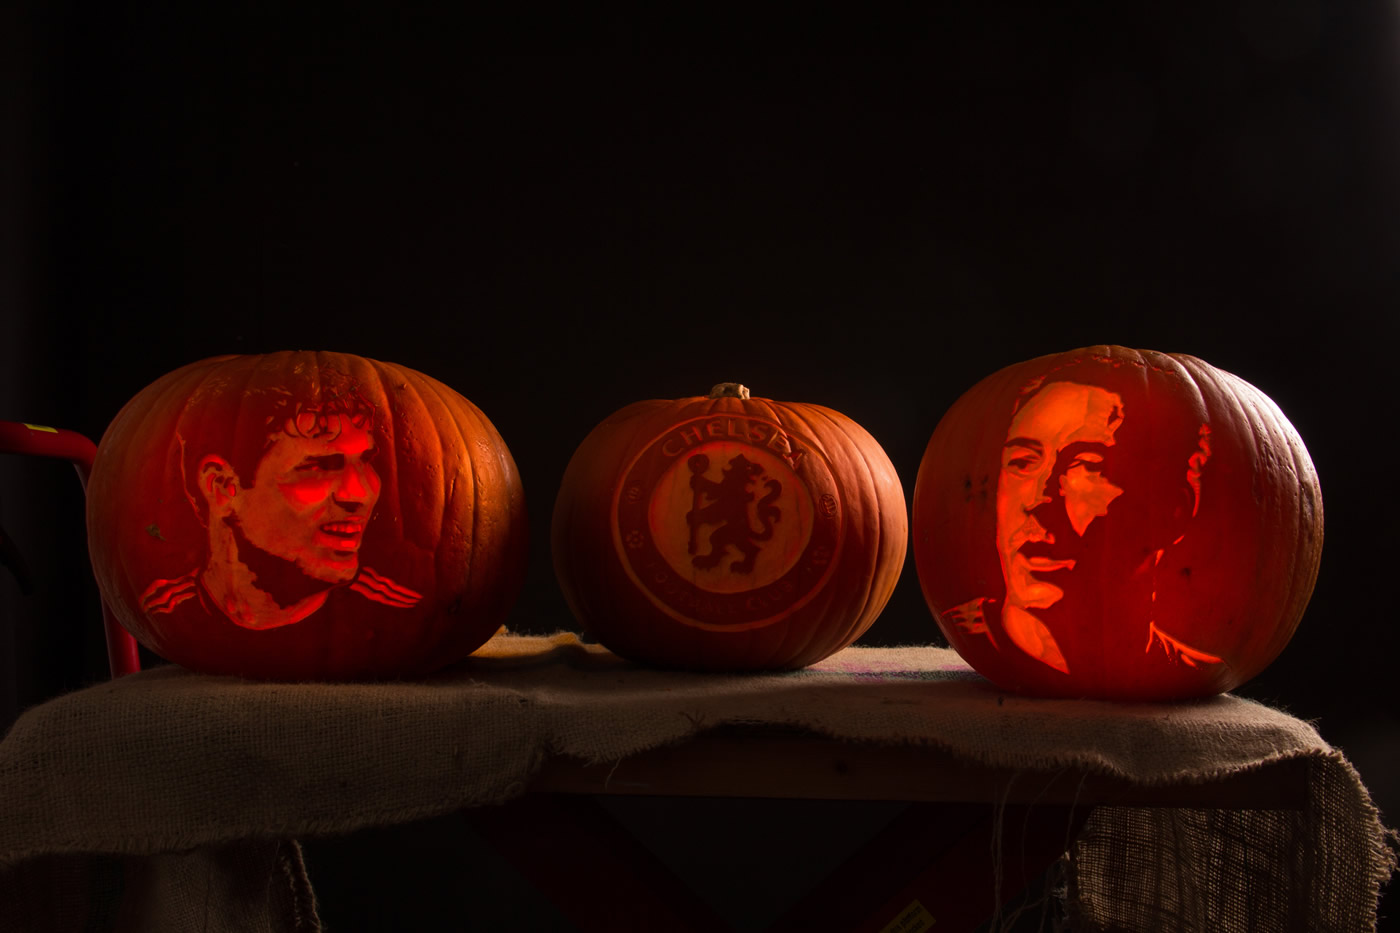 Chelsea FC professionally carved pumpkins for Halloween